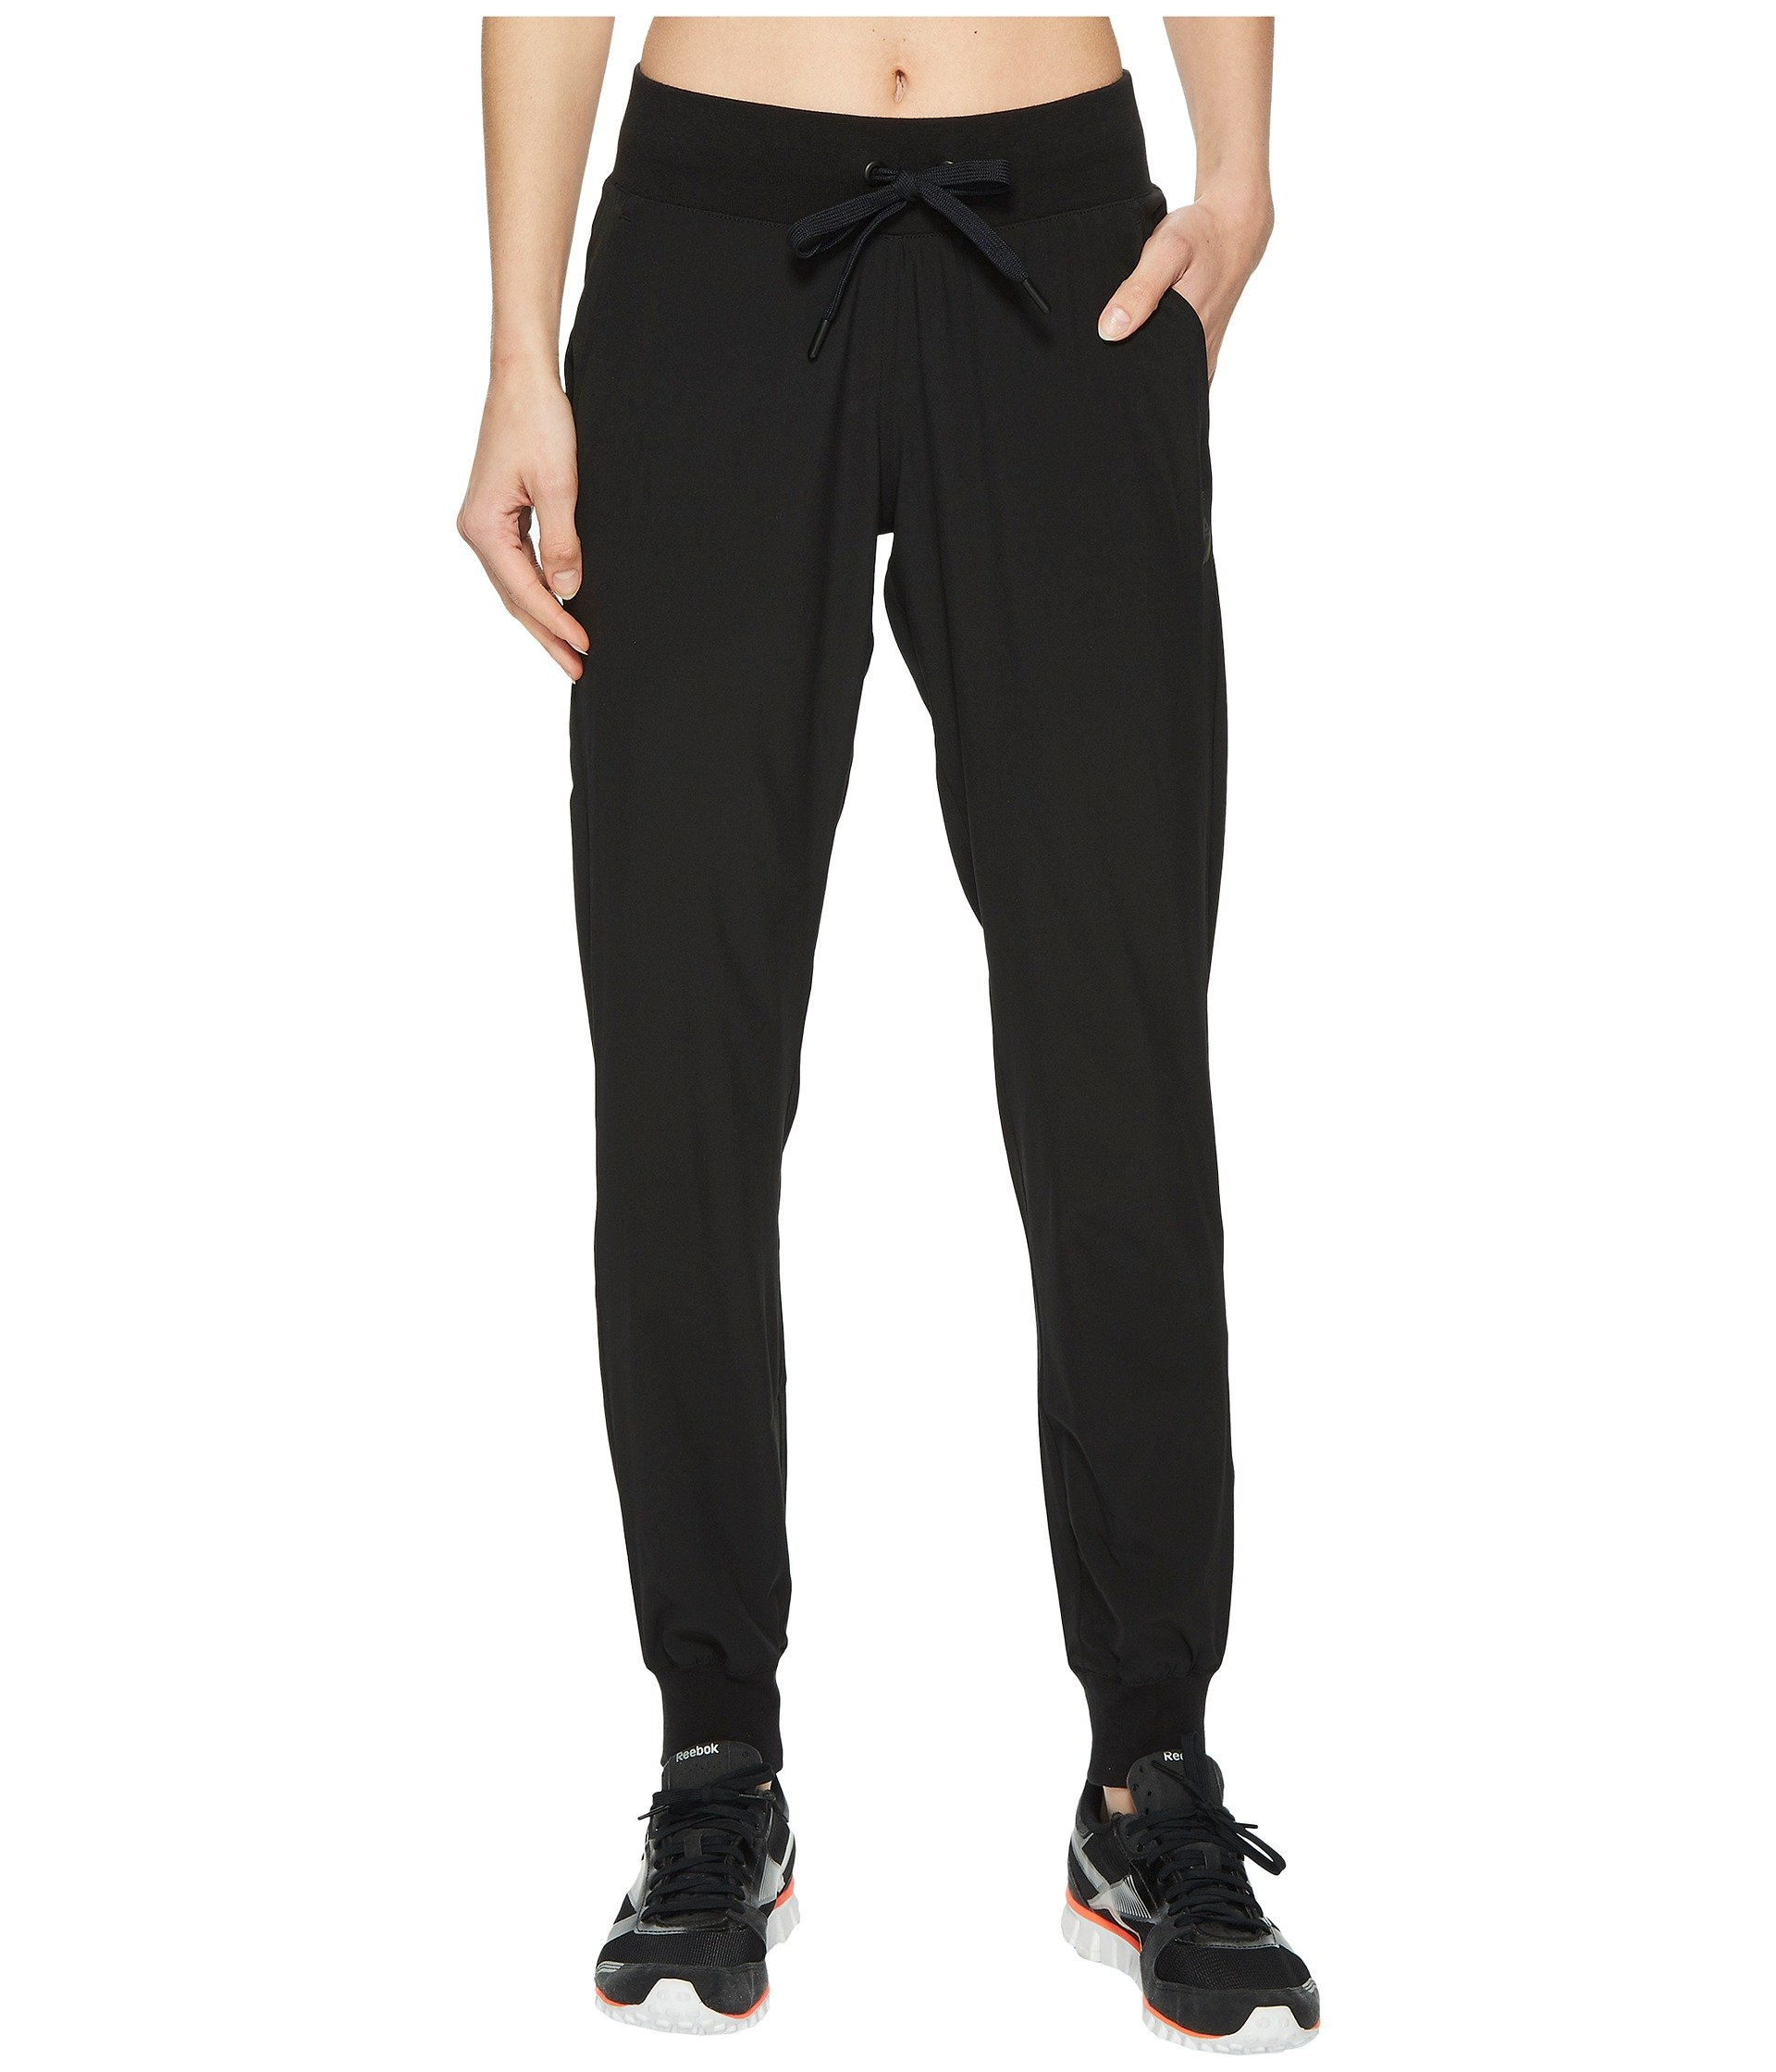 Women'S Training Supply Woven Jogger Pants, Black from 6PM.COM